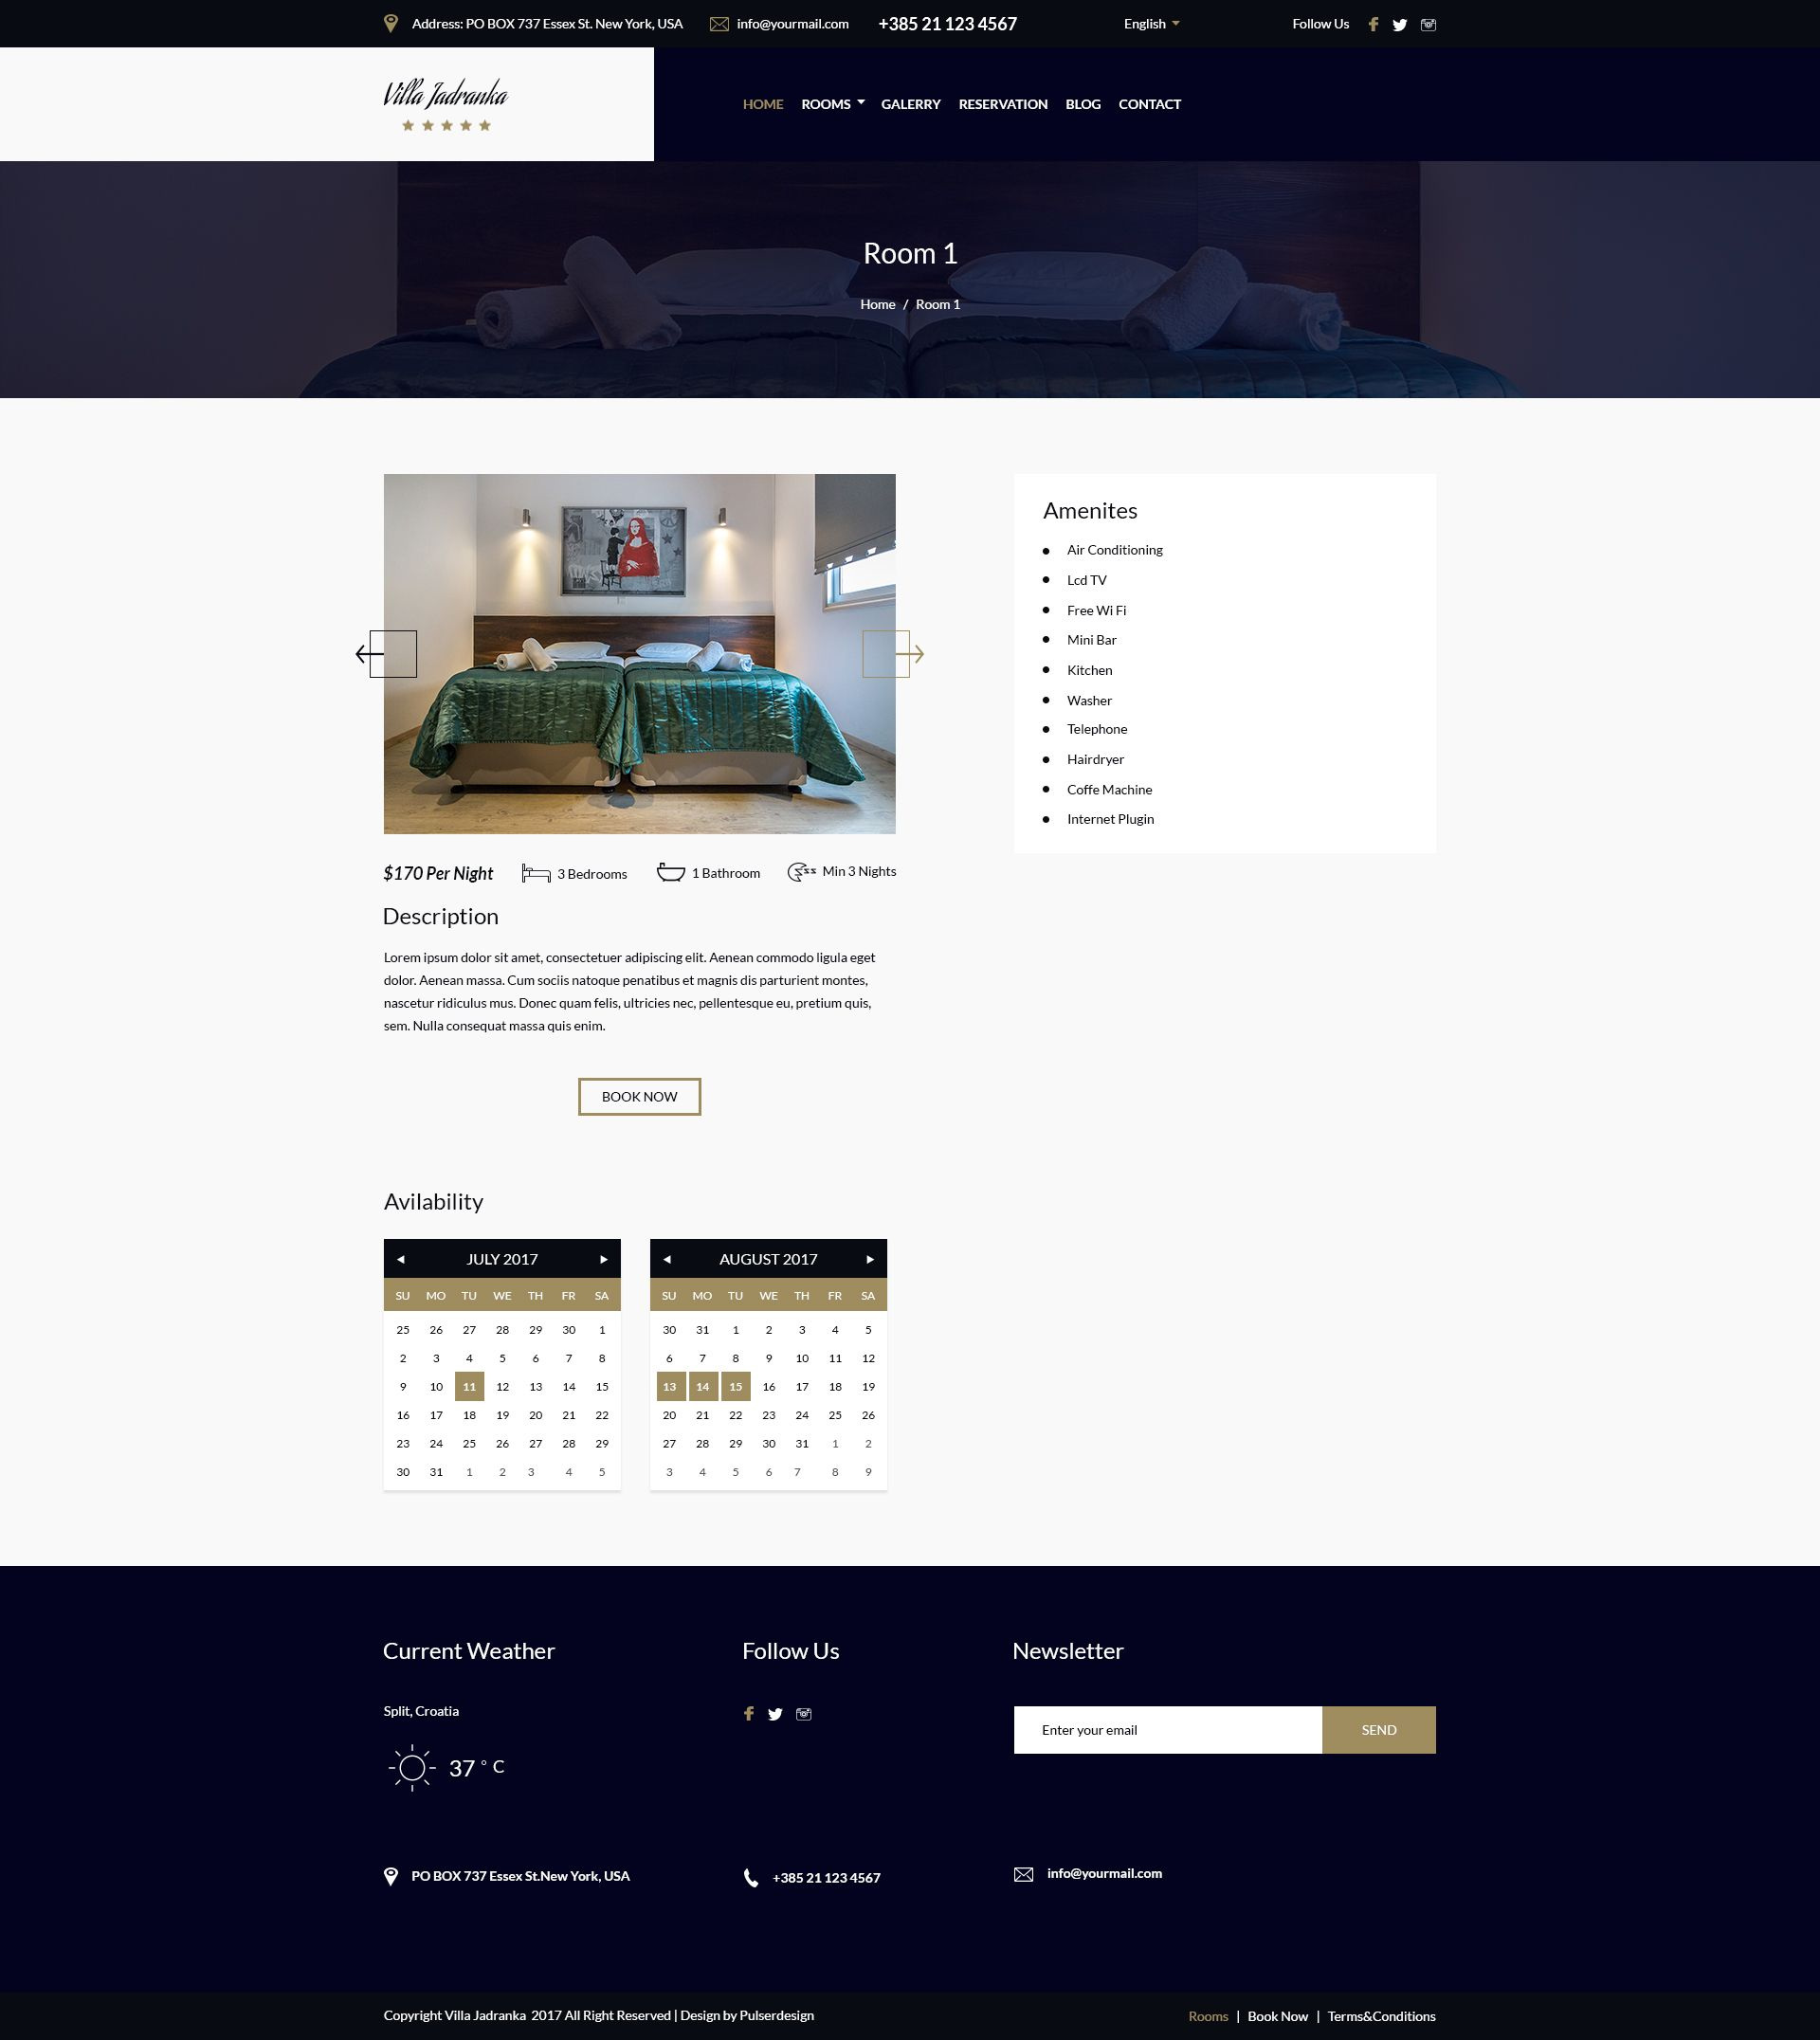 Villa Jadranka - Website PSD Template Screenshot 2